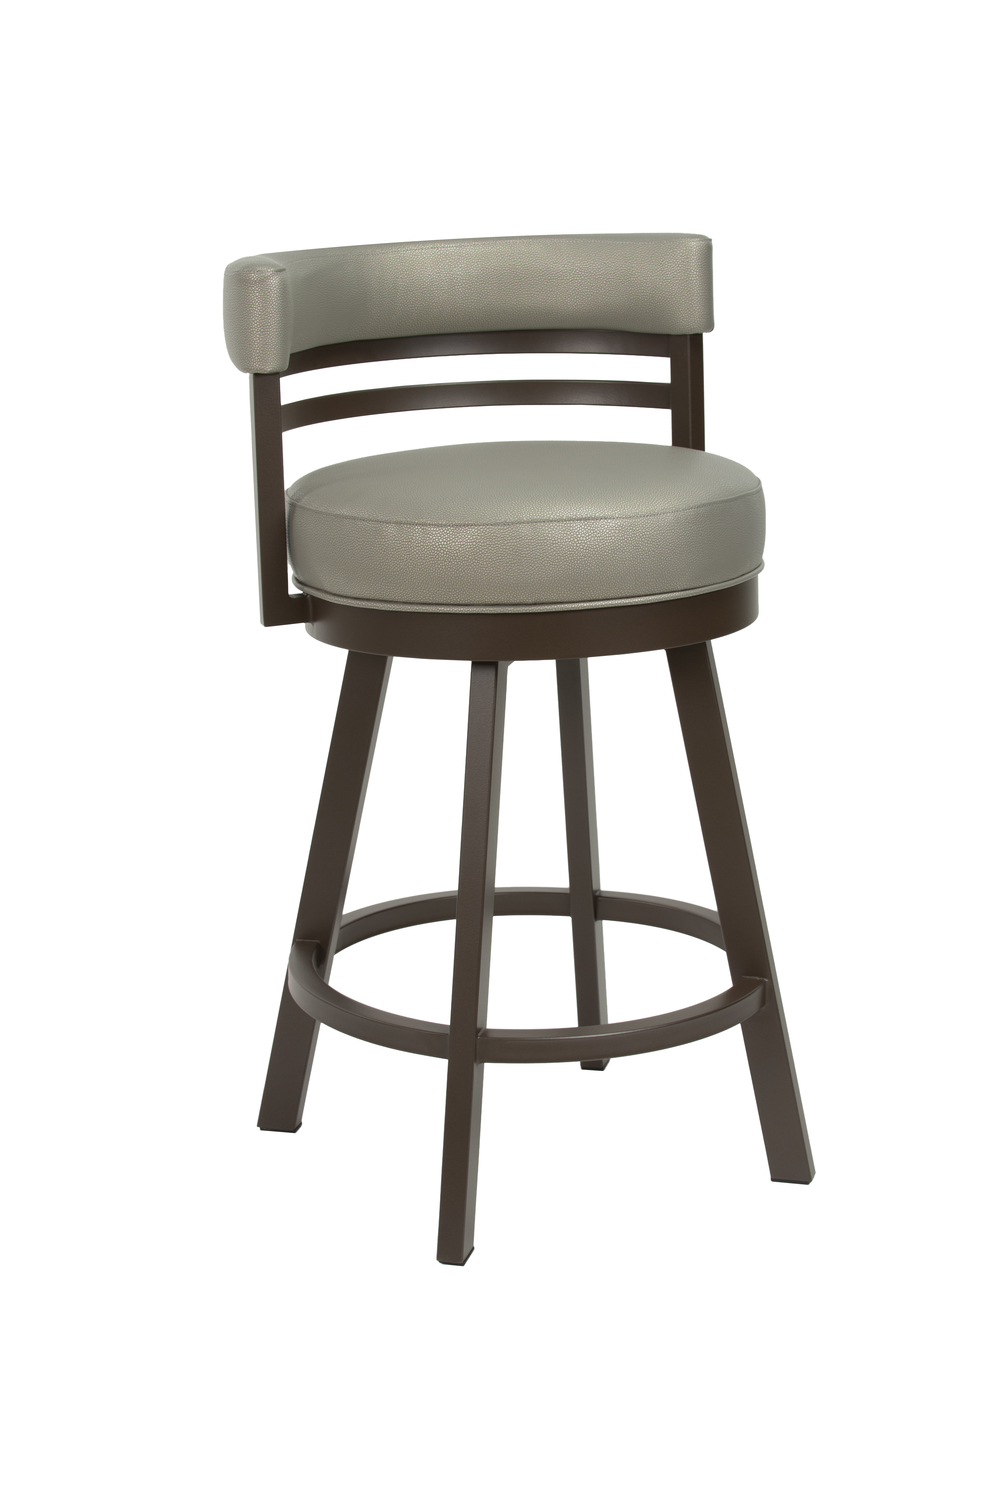 Wesley Allen - Swivel Stool with Back, No Arms